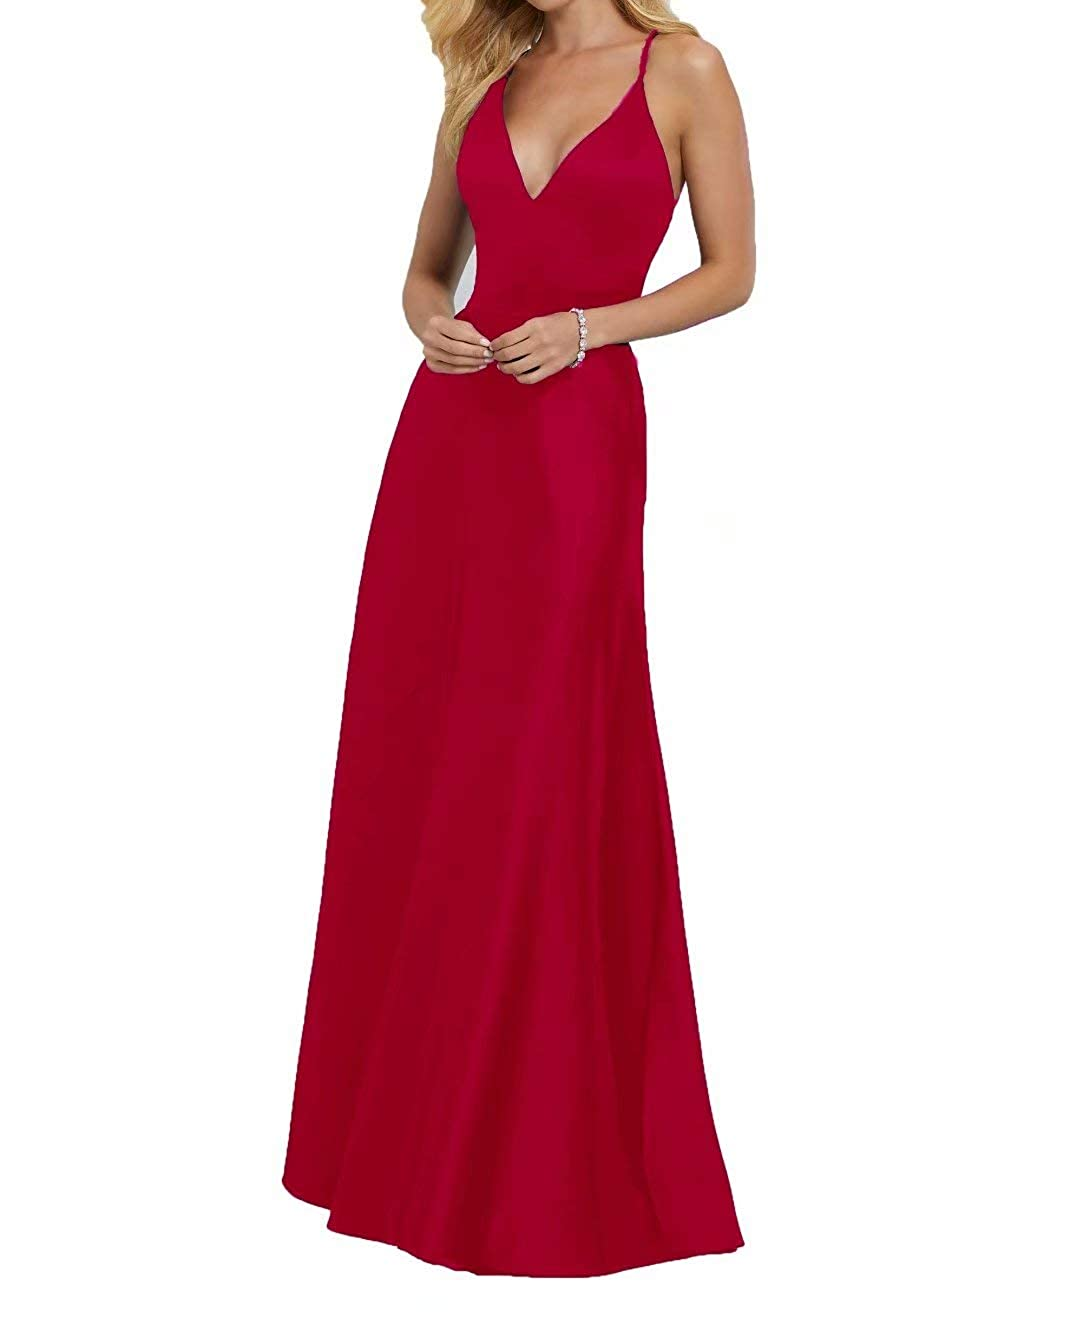 Red ANFF Spaghetti Straps Deep VNeckline Sexy Satin Bridesmaids Dress Long Formal Gowns for Juniors